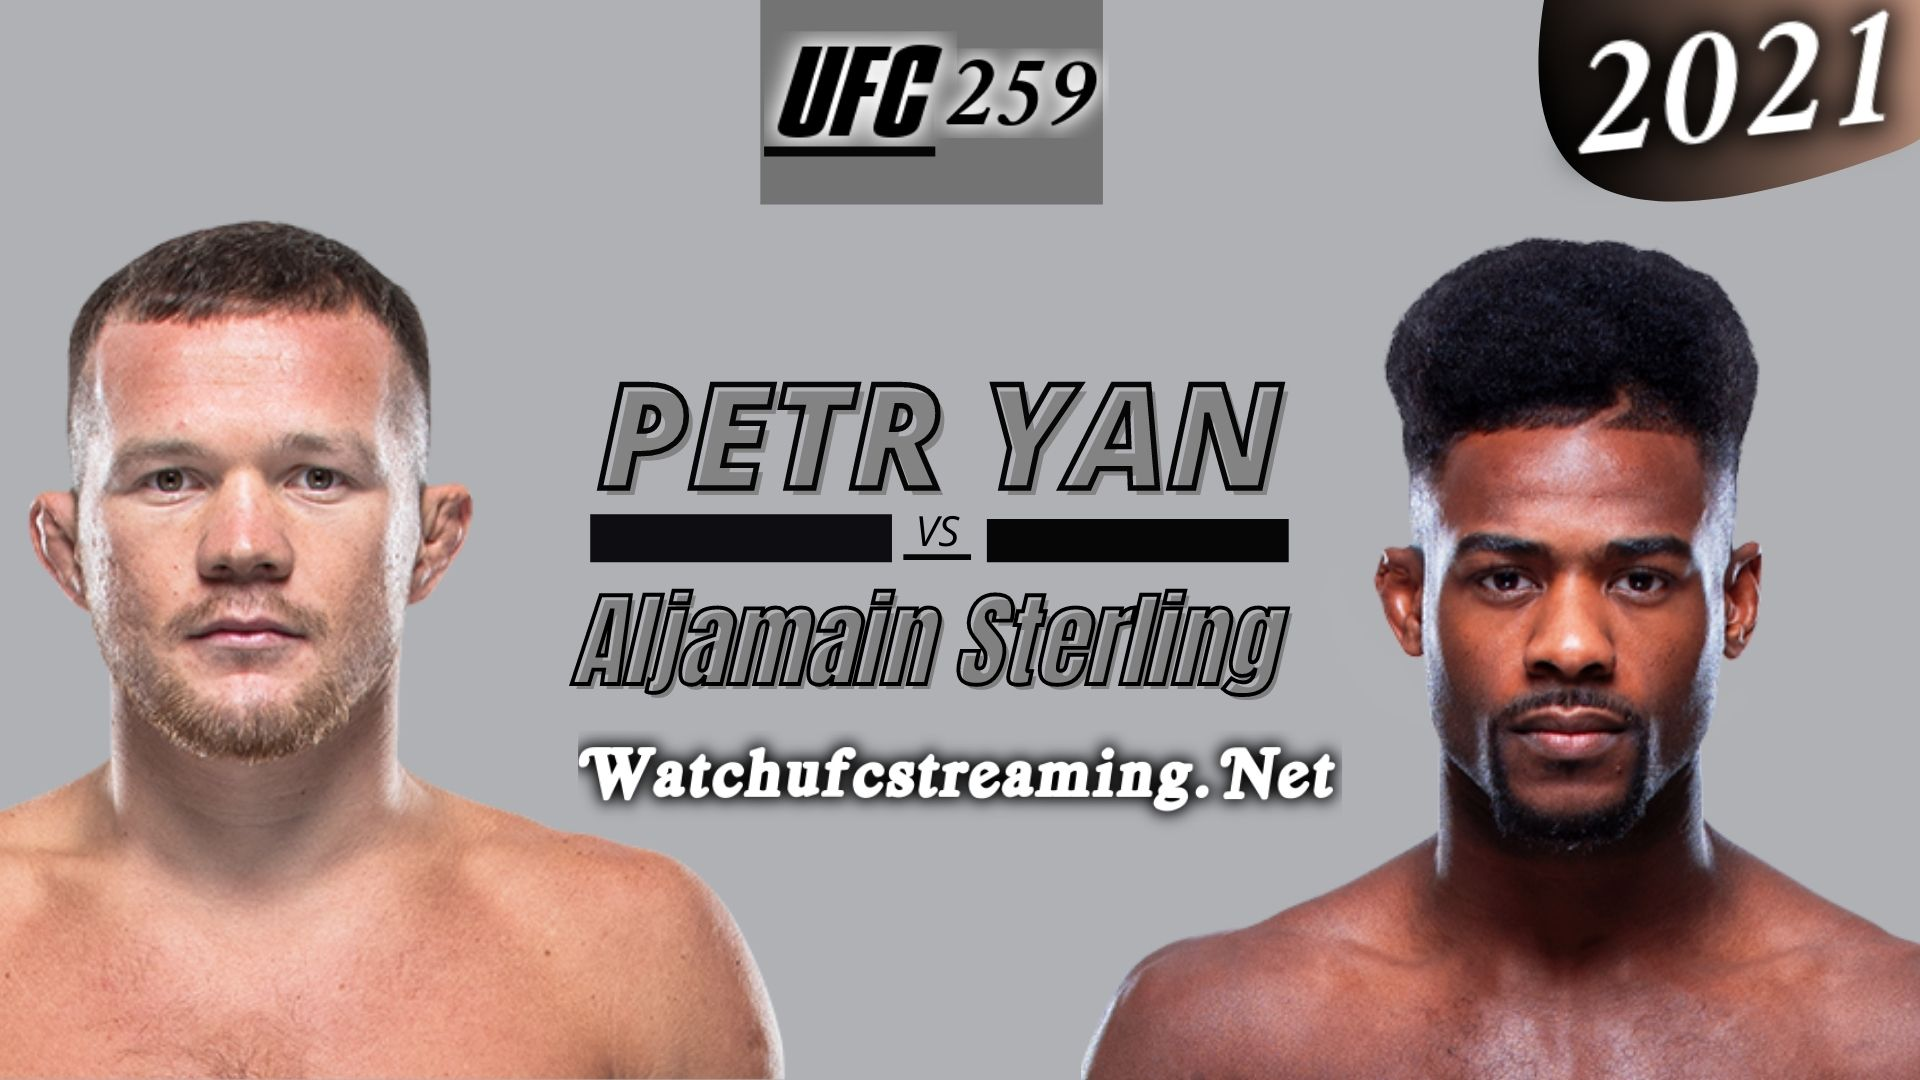 UFC 259: Petr Yan Vs Aljamain Sterling Highlights 2021 | Bantamweight